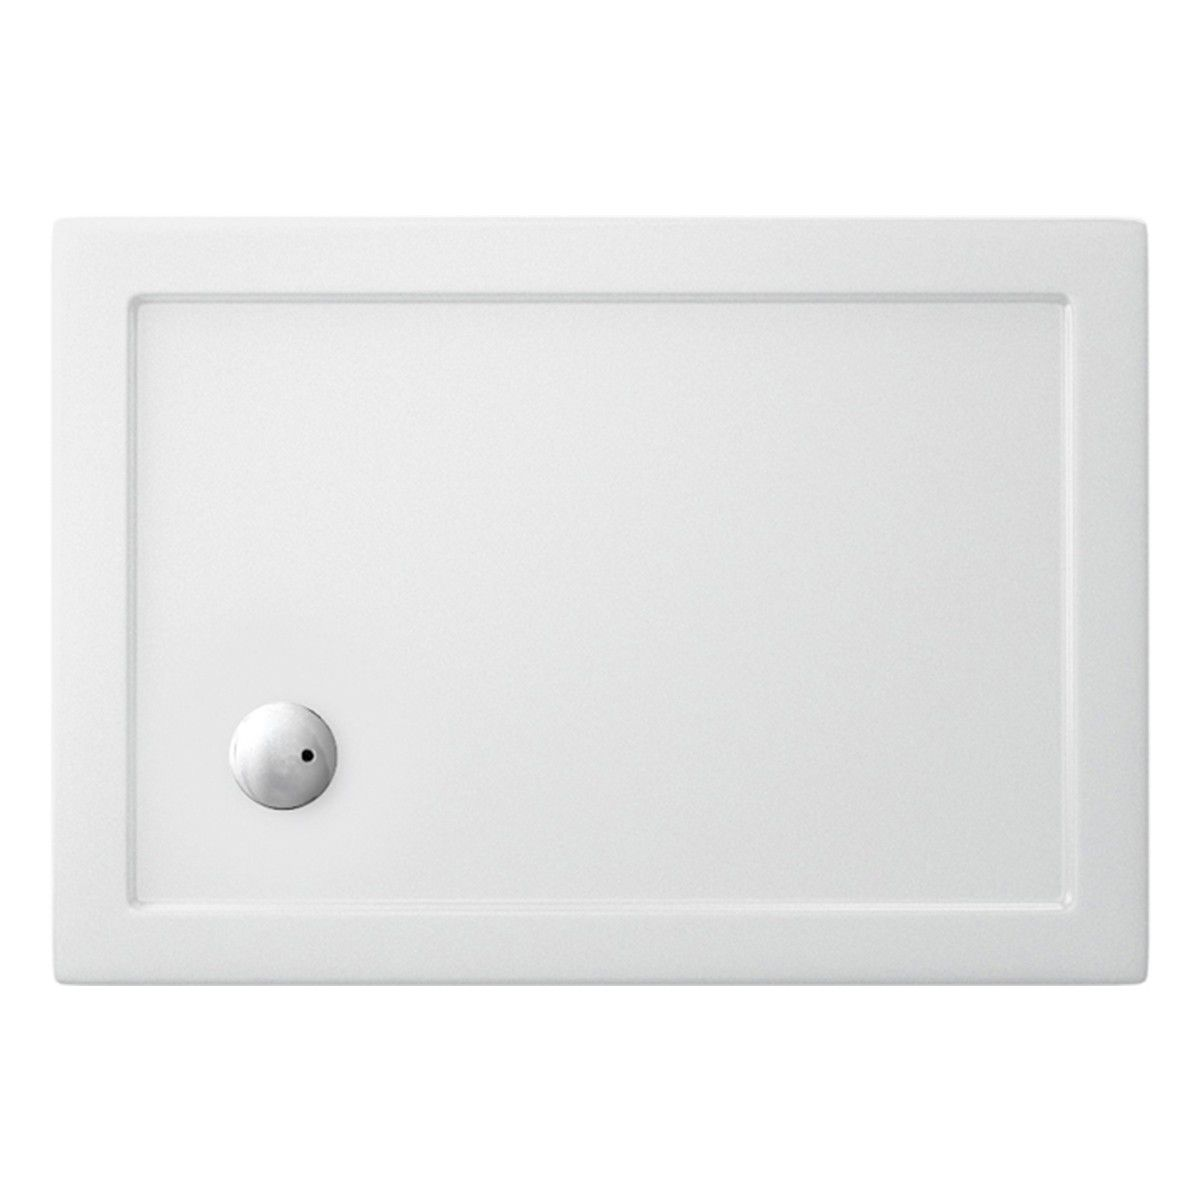 Simpsons Rectangular 35mm Acrylic Shower Tray With Corner